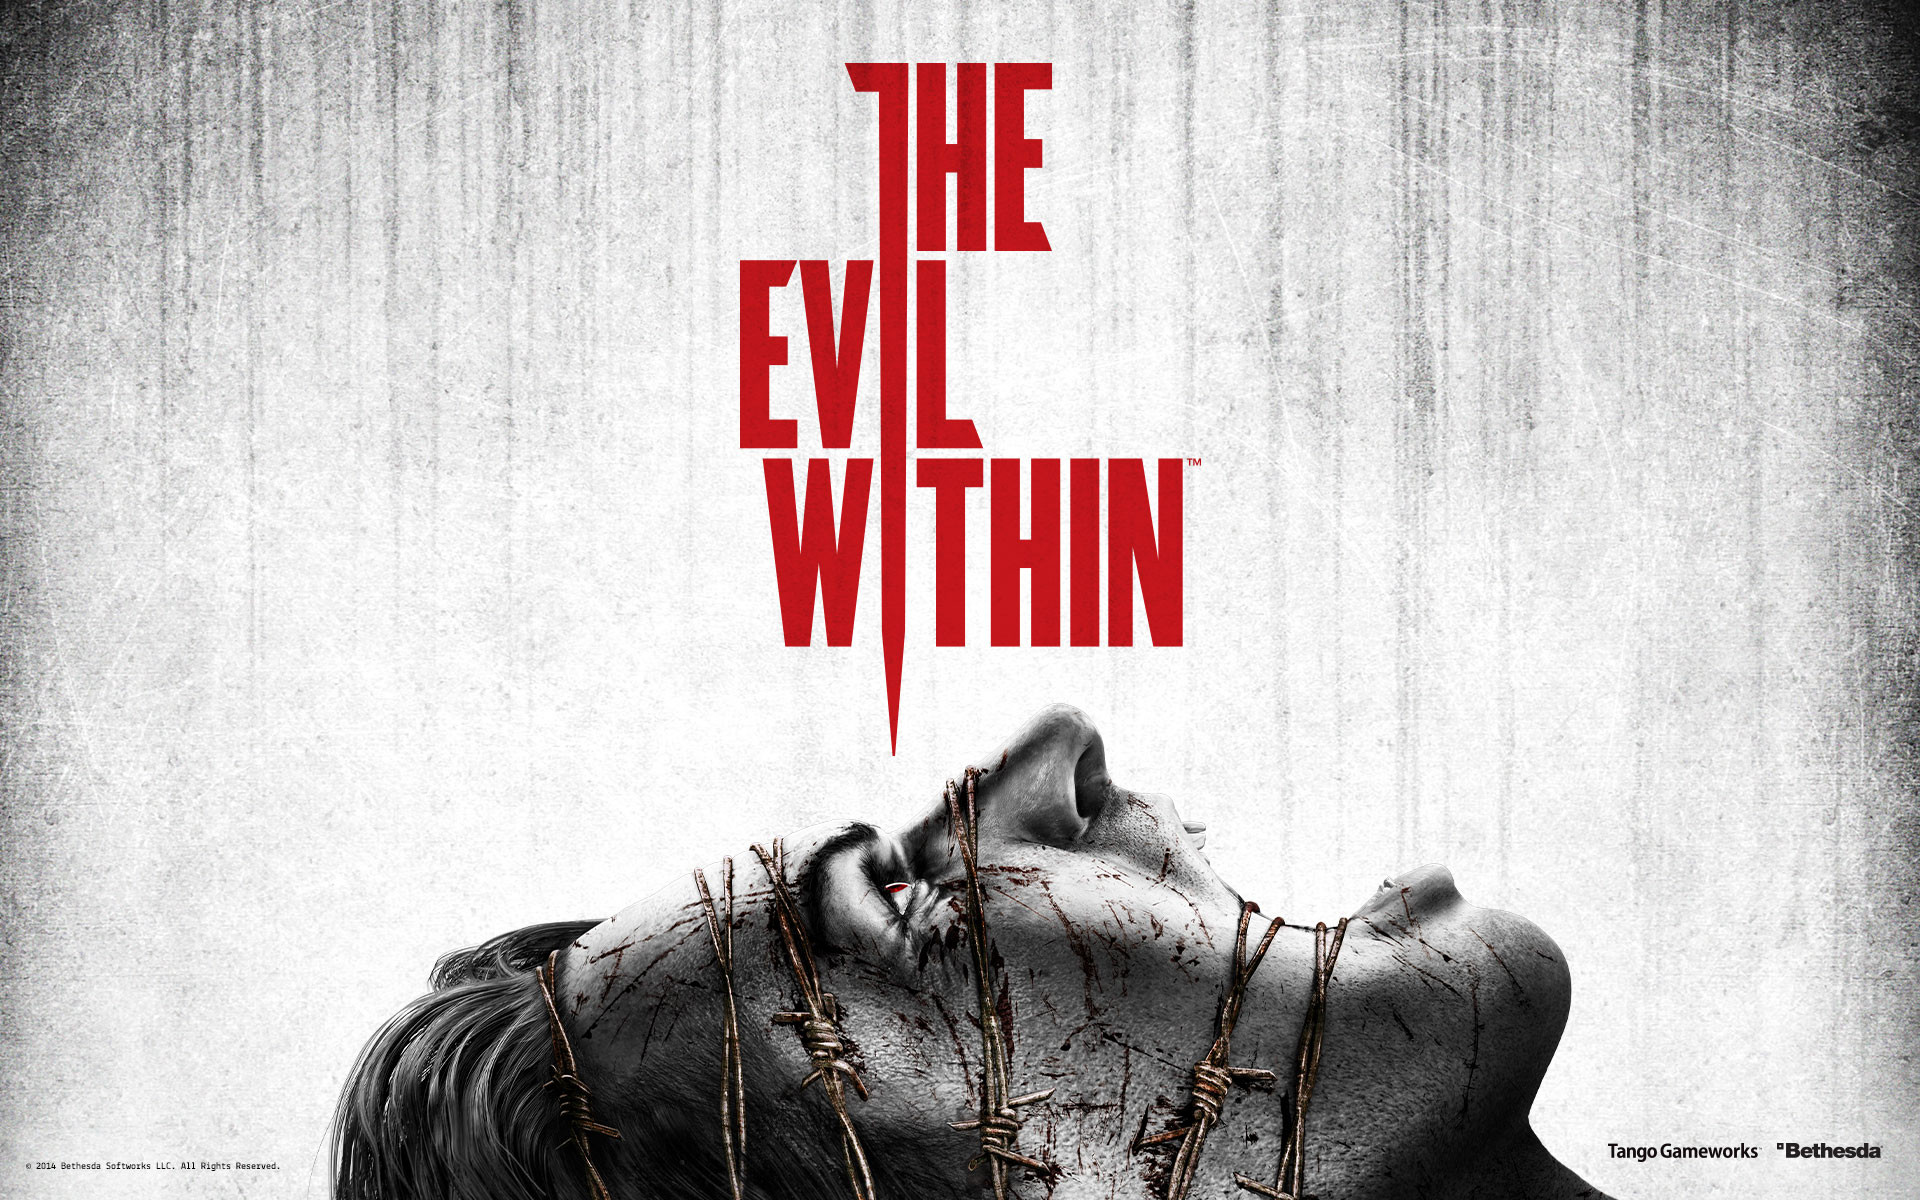 1920x1200 Wallpaper The evil within, Tango gameworks, Resident evil, Shinji mikami  HD, Picture, Image